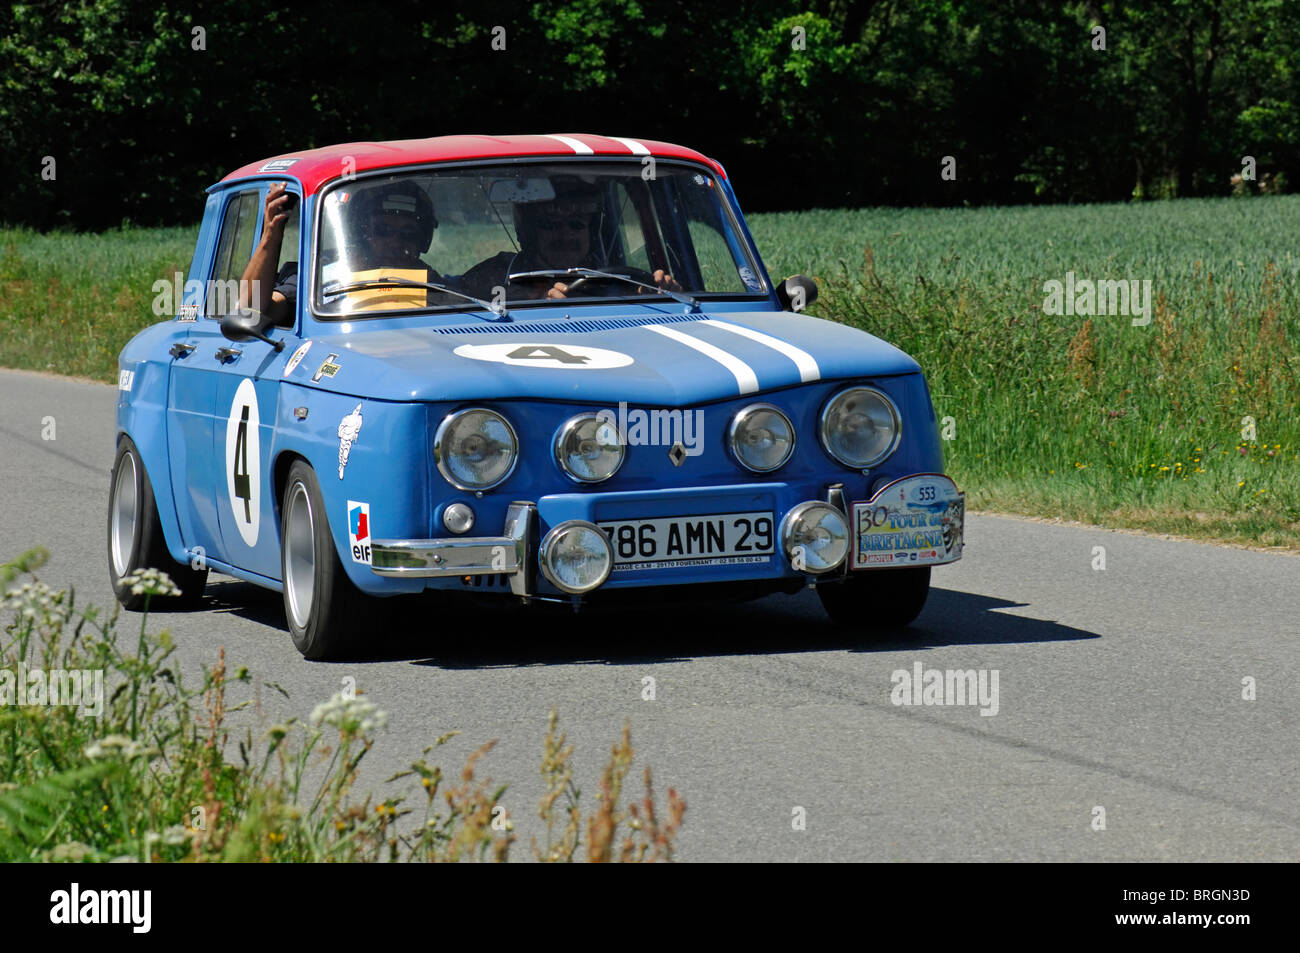 renault r8 gordini 1965 in the tour de bretagne classic car rally stock photo royalty free. Black Bedroom Furniture Sets. Home Design Ideas